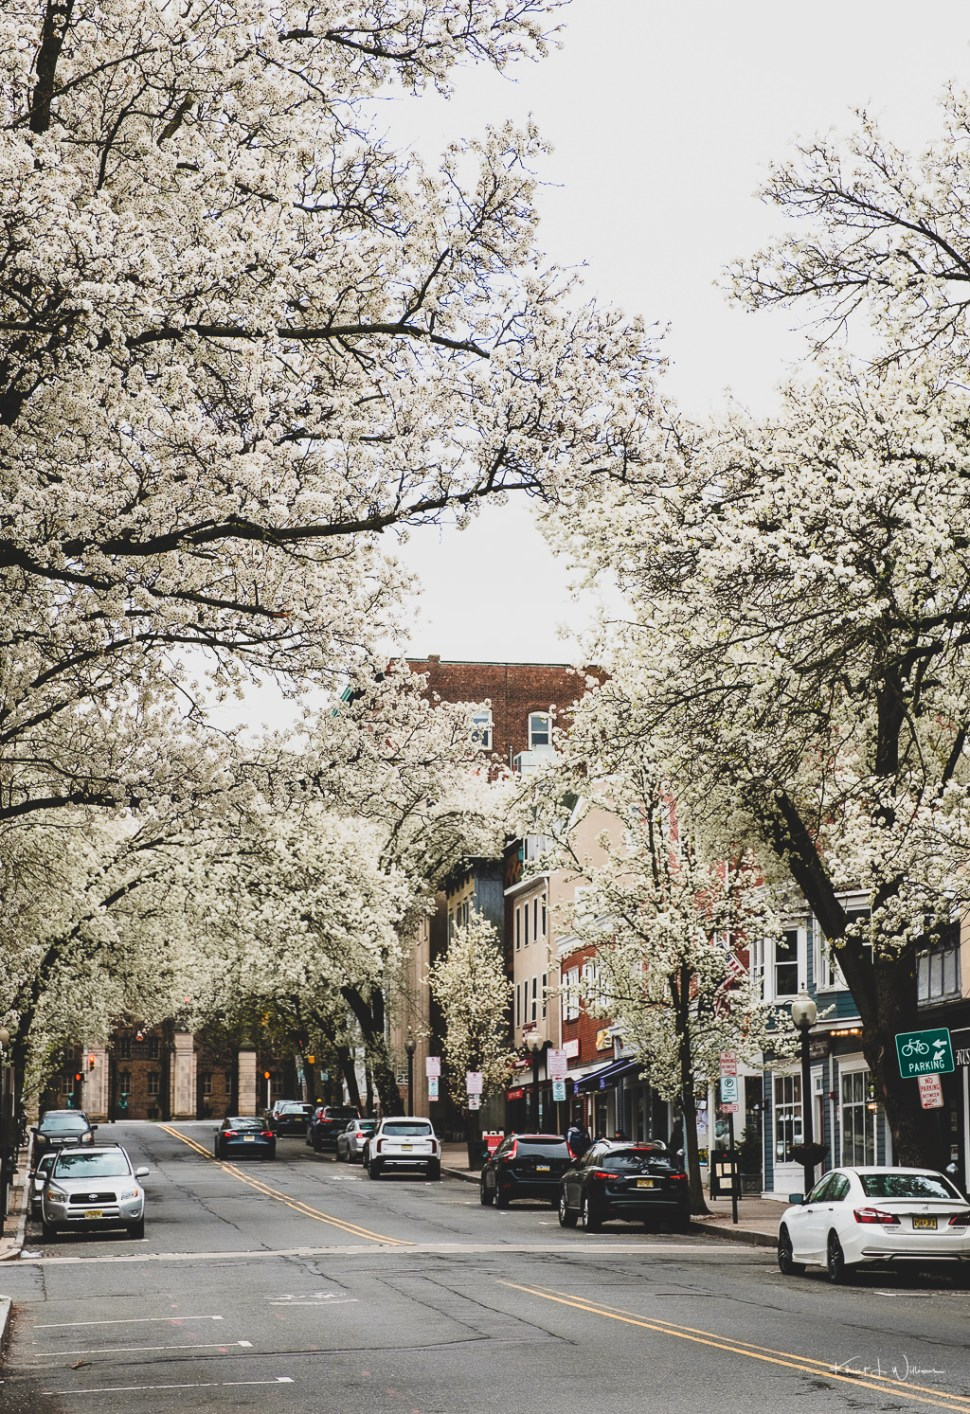 Witherspoon Street, Princeton, New Jersey